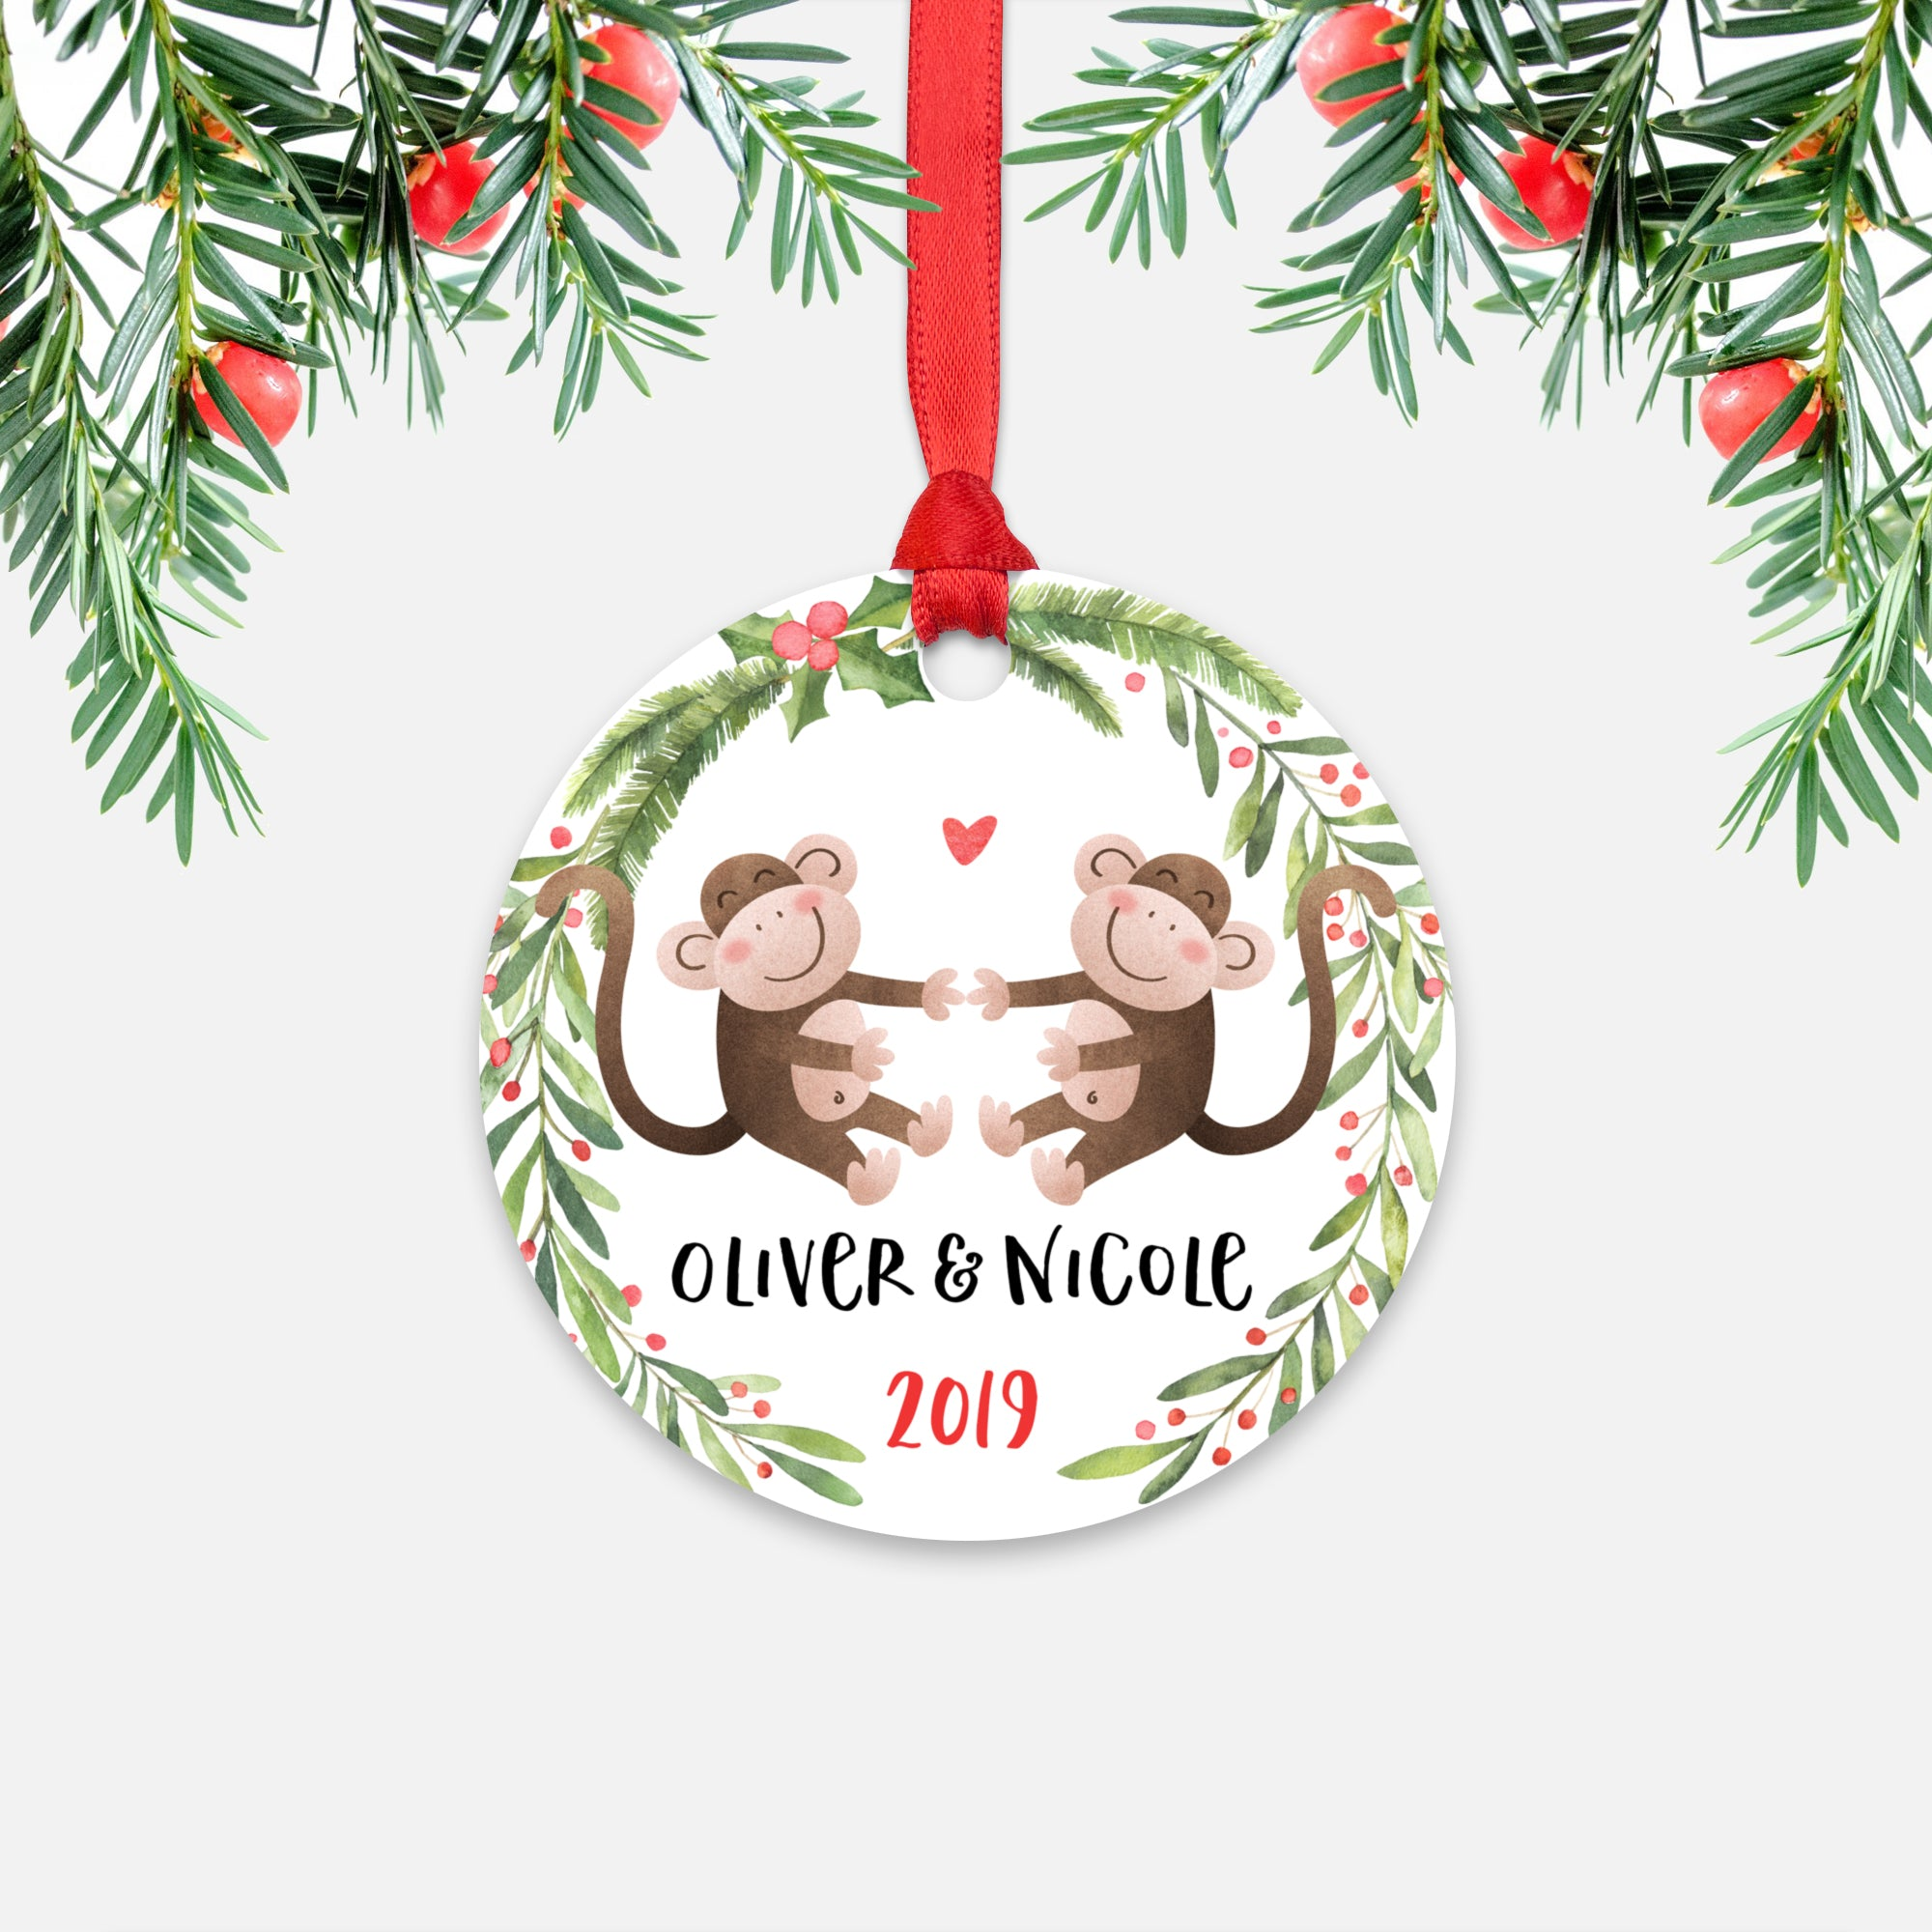 Monkey Couple Personalized Christmas Ornament - Holidays Custom Gift for Animal Lover Wedding Engagement Newlyweds Wife Husband Boyfriend Girlfriend - Round Aluminum - Red Ribbon Hanging in Tree - by Happy Cat Prints